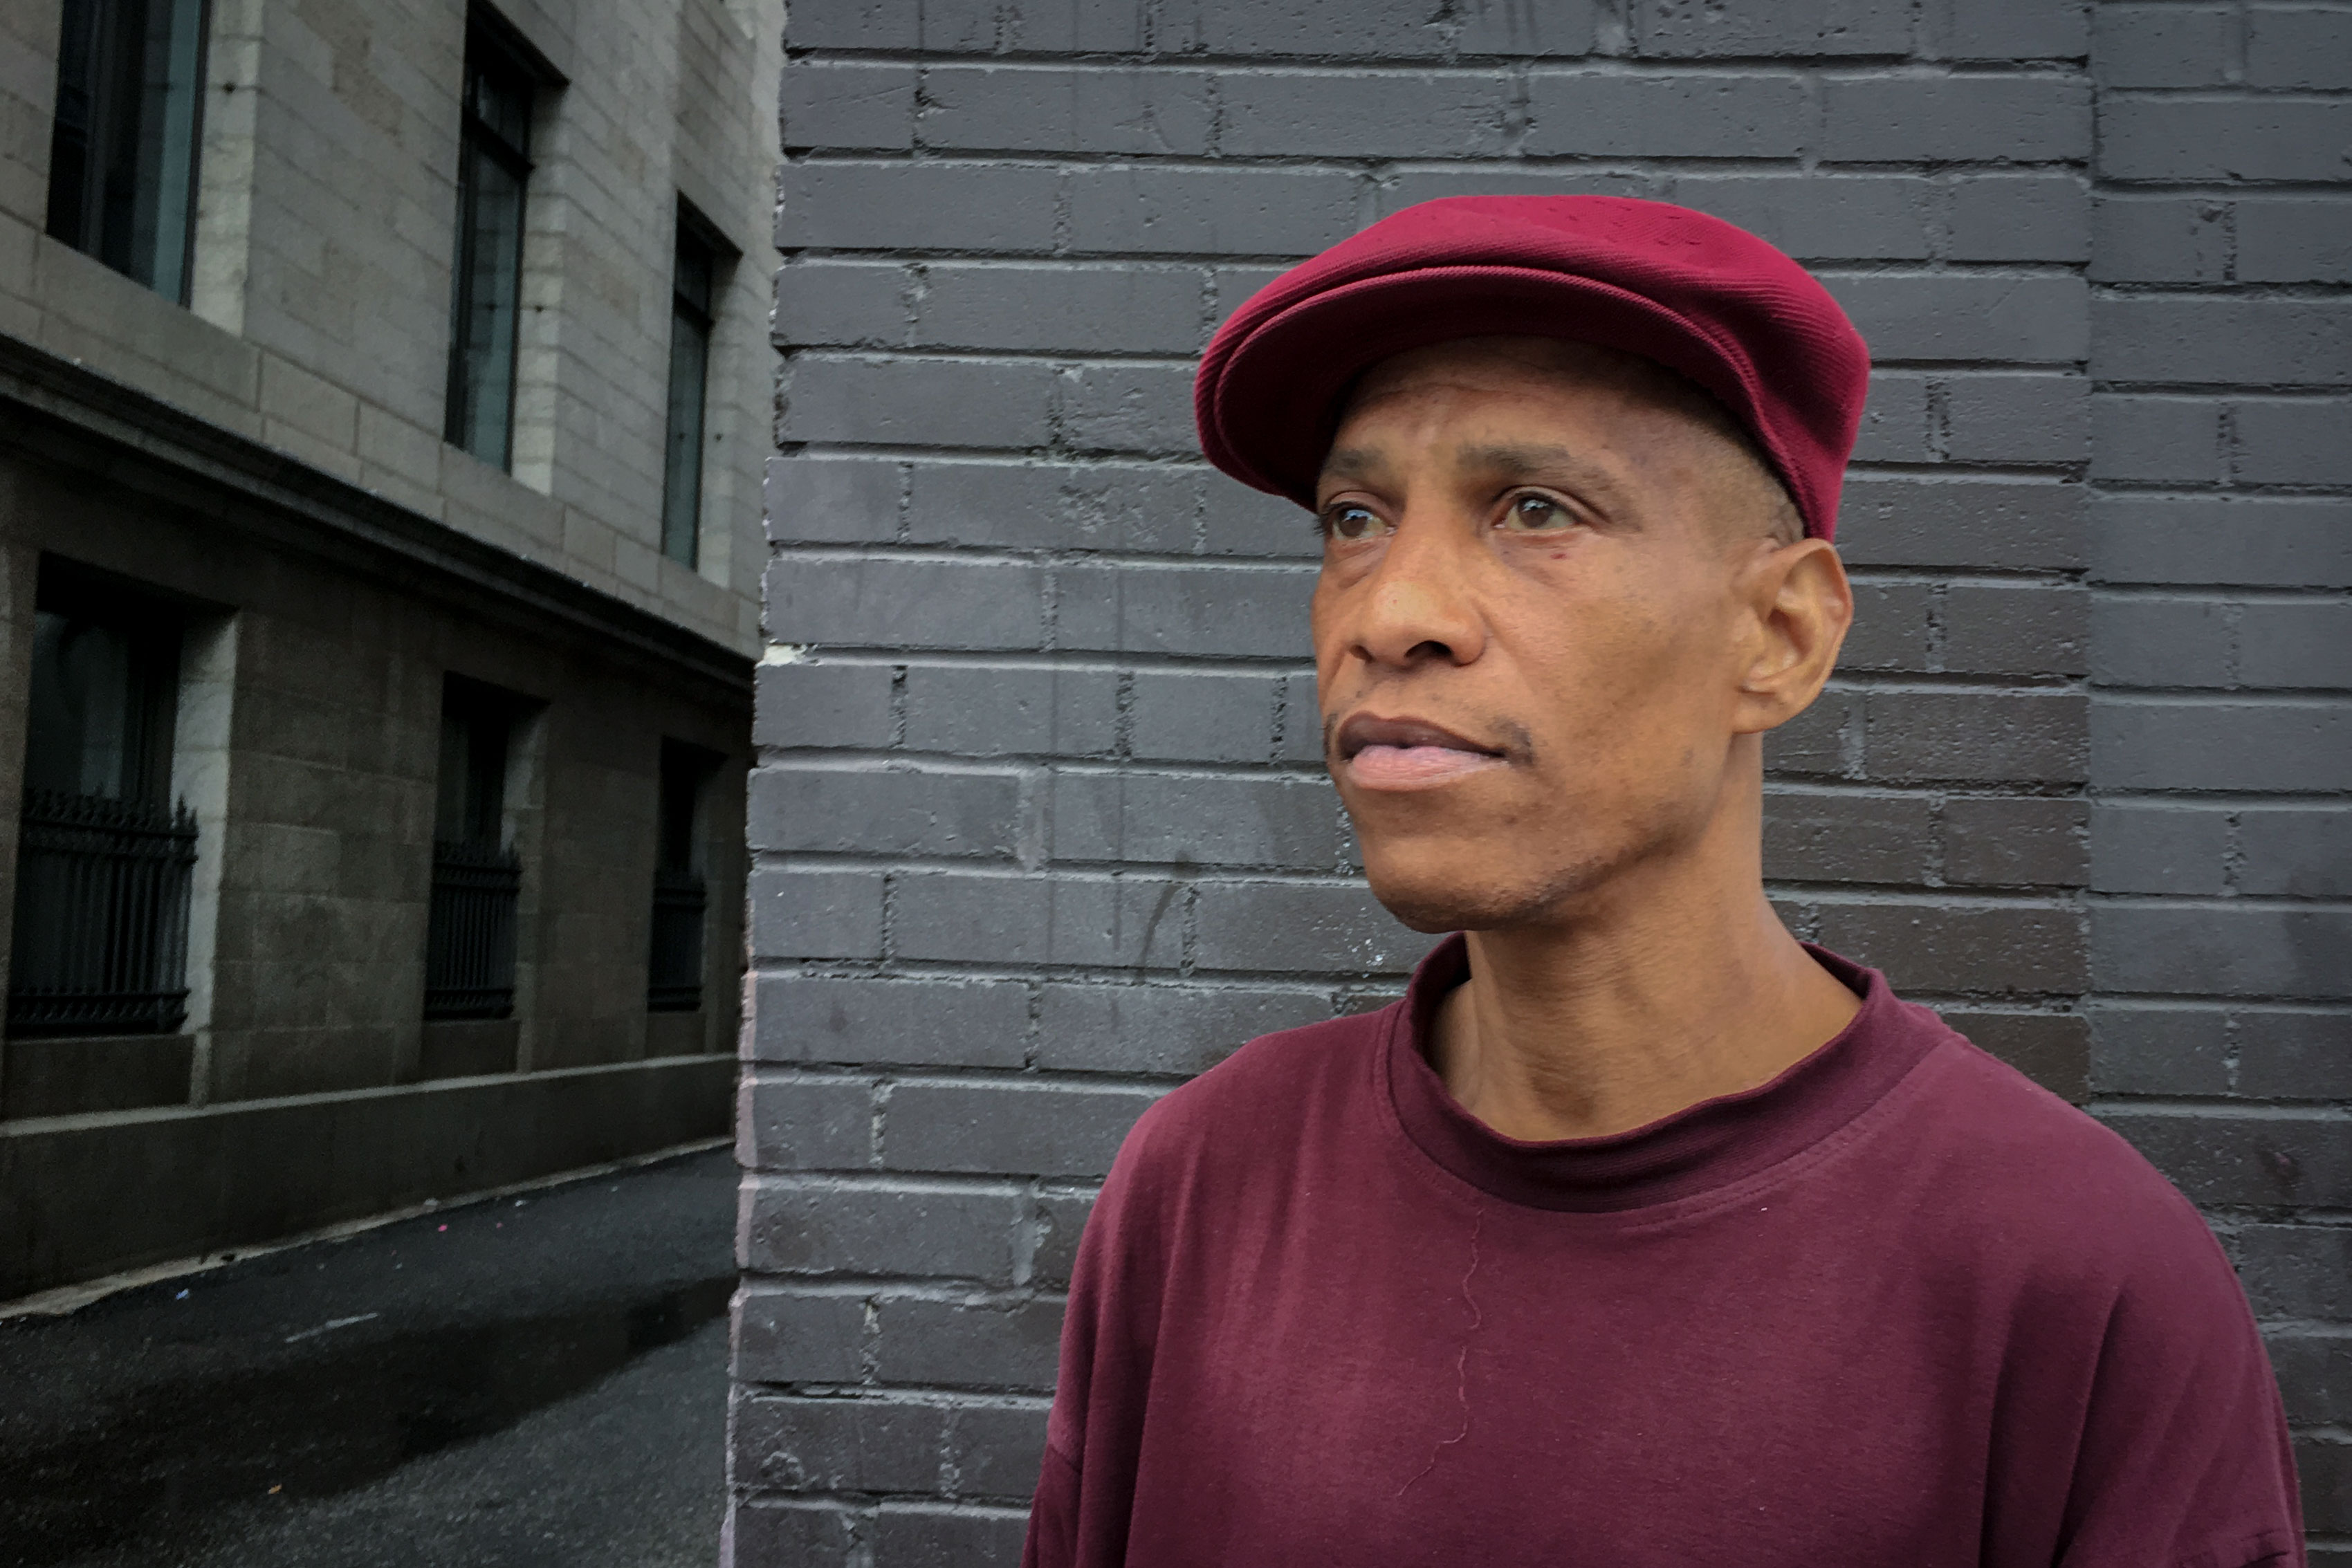 <p>Vernon Lewis is Denver's Harm Reduction Action Center's overdose prevention coordinator. By his count, he's treated overdosing people with naloxone as many as 140 times. And he's in recovery himself: Twice someone gave him naloxone when he overdosed.</p>